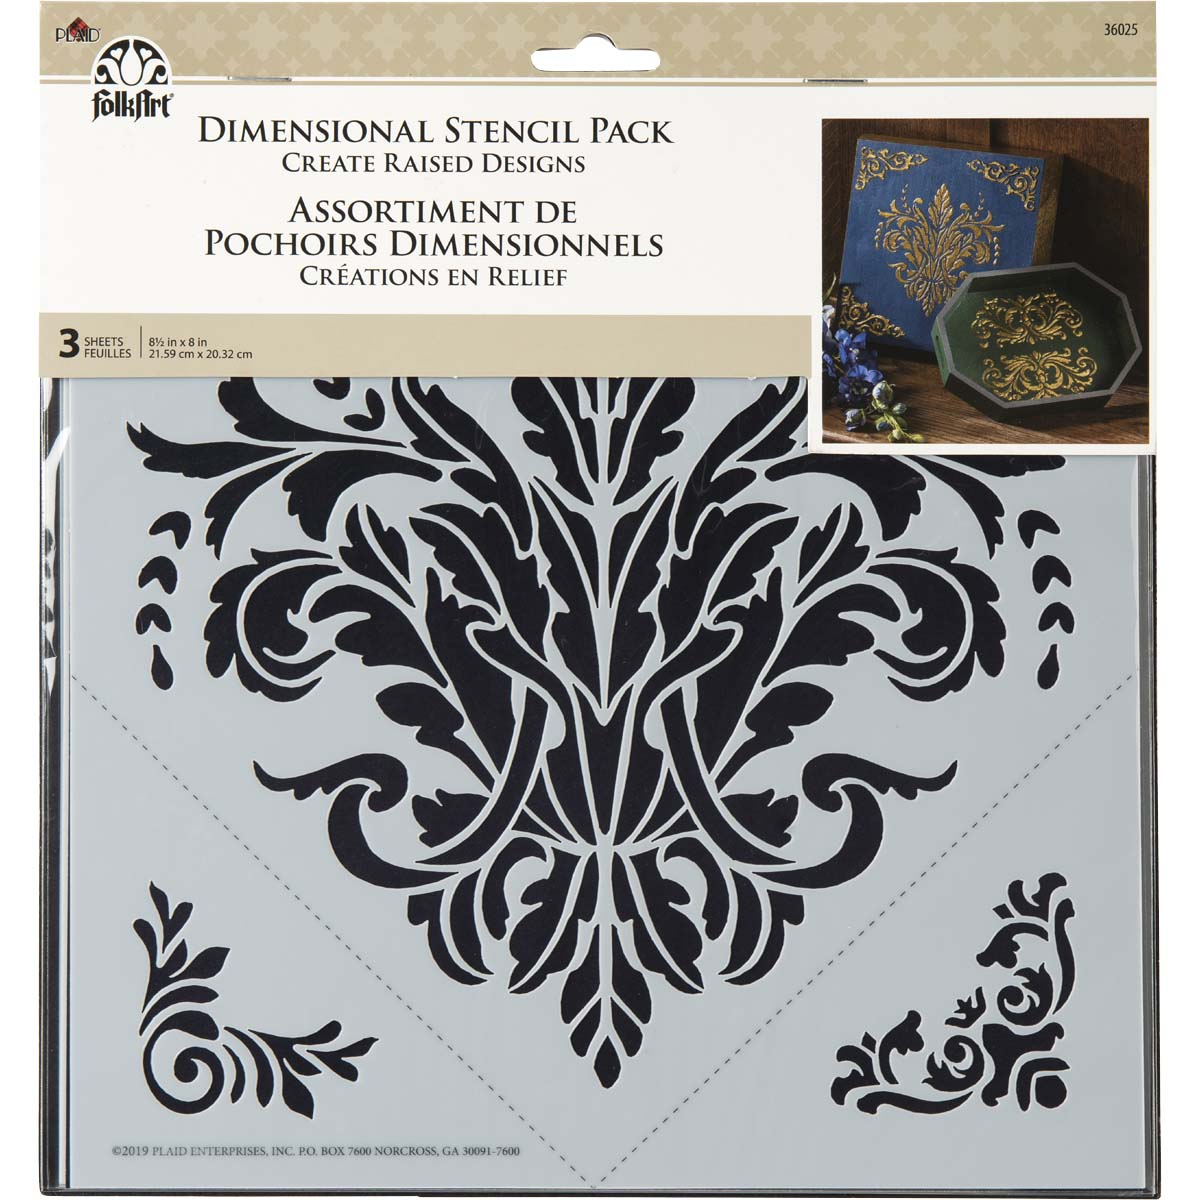 FolkArt ® Dimensional Stencil Pack - Architectural, 3 pc. - 36025